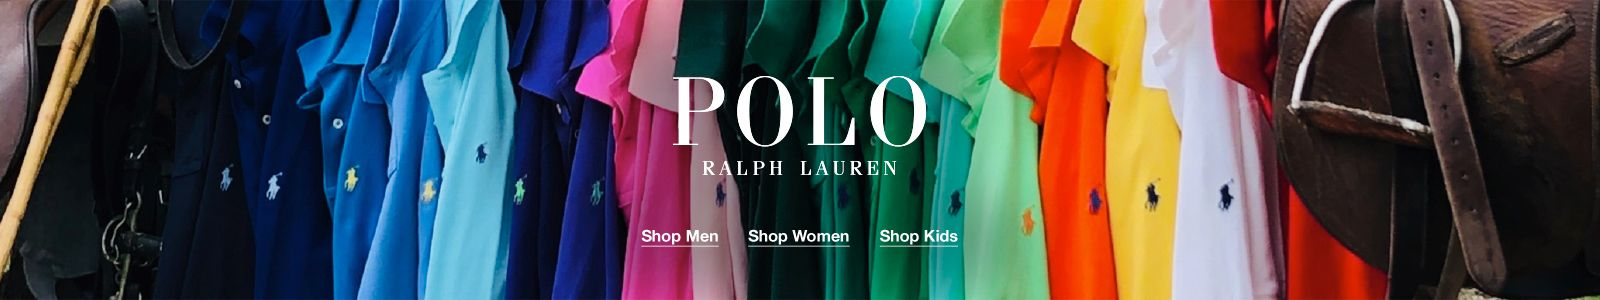 Polo, Ralph Lauren, Shop Men, Shop Women, Shop Kids